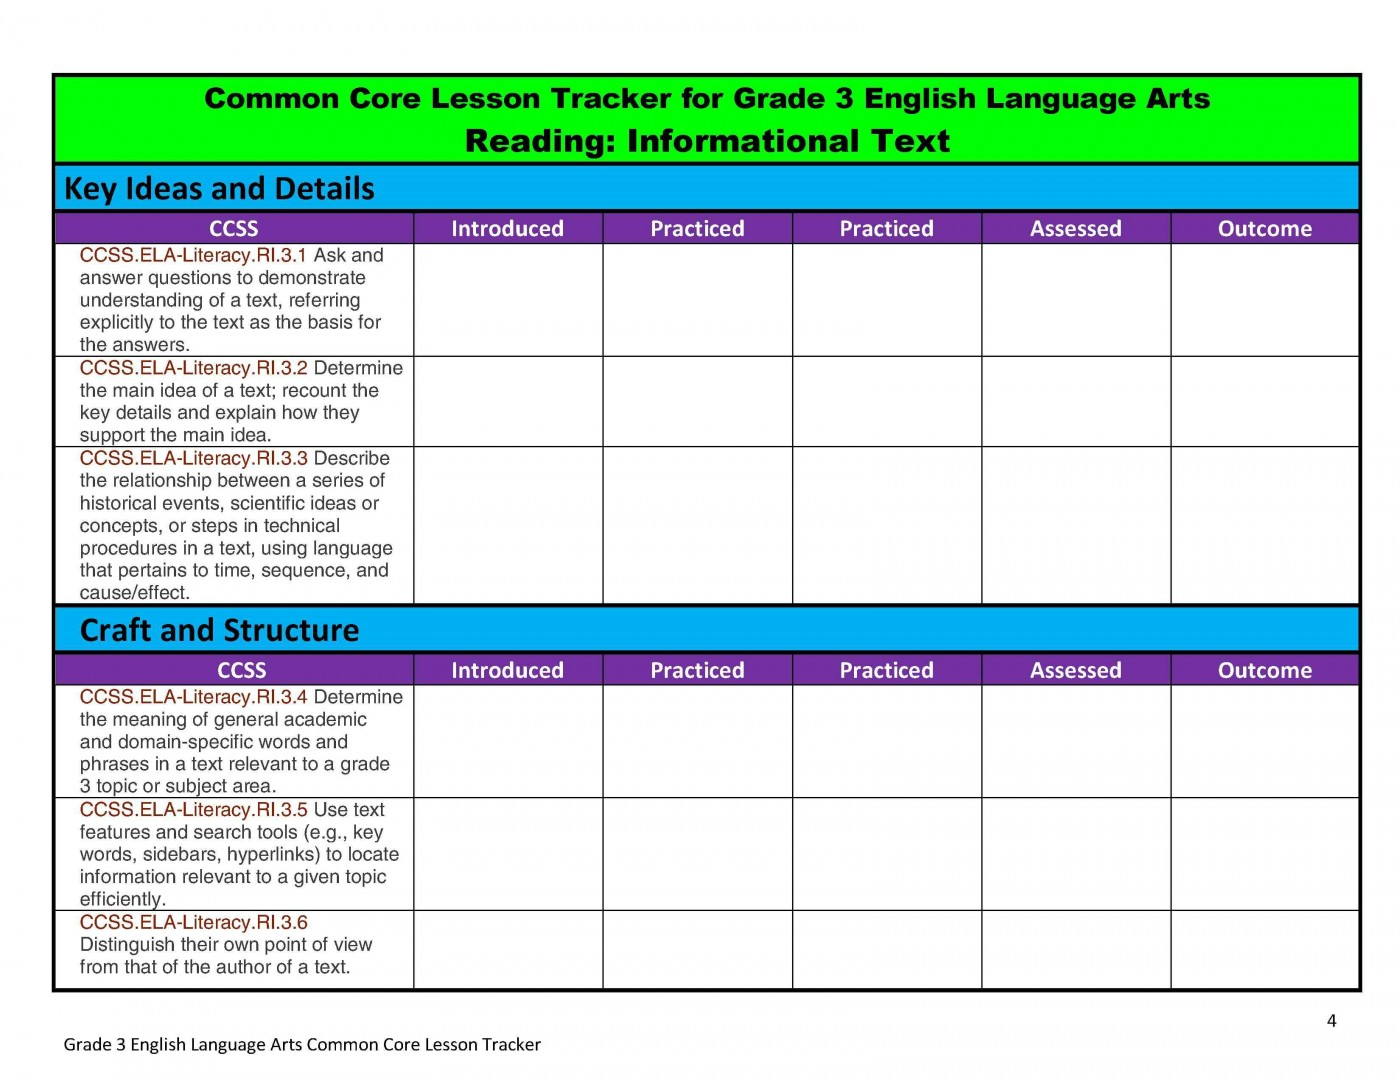 004 Staggering Lesson Plan Template For Kindergarten Common Core High Resolution 1400